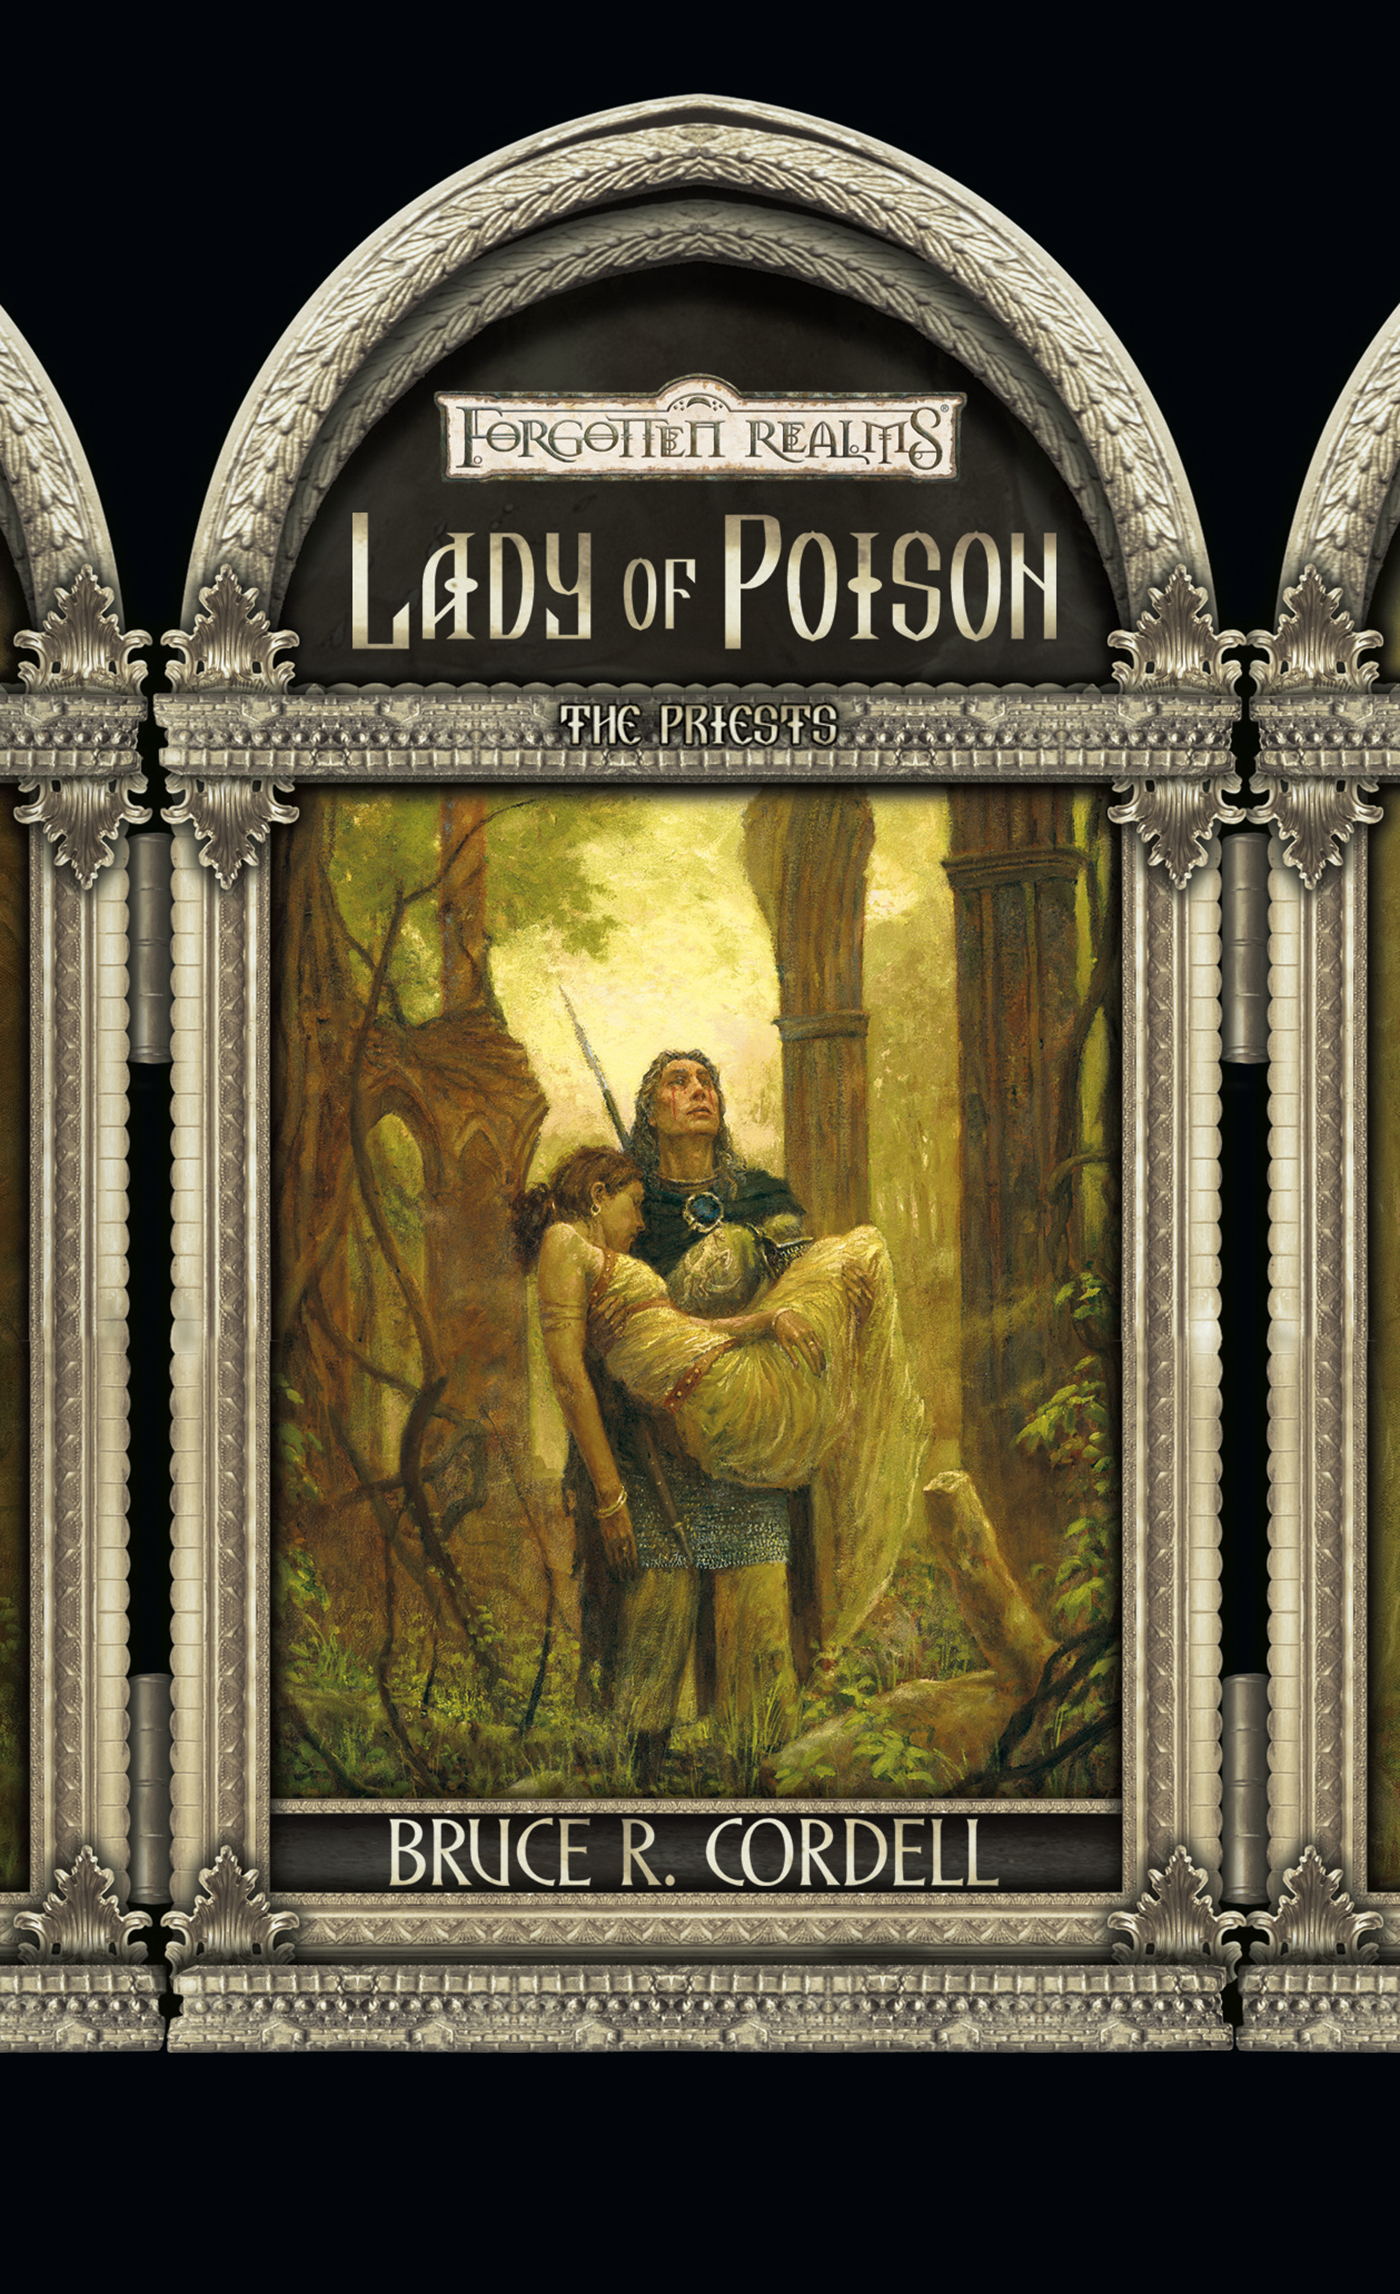 File:Lady of poison cover.jpg